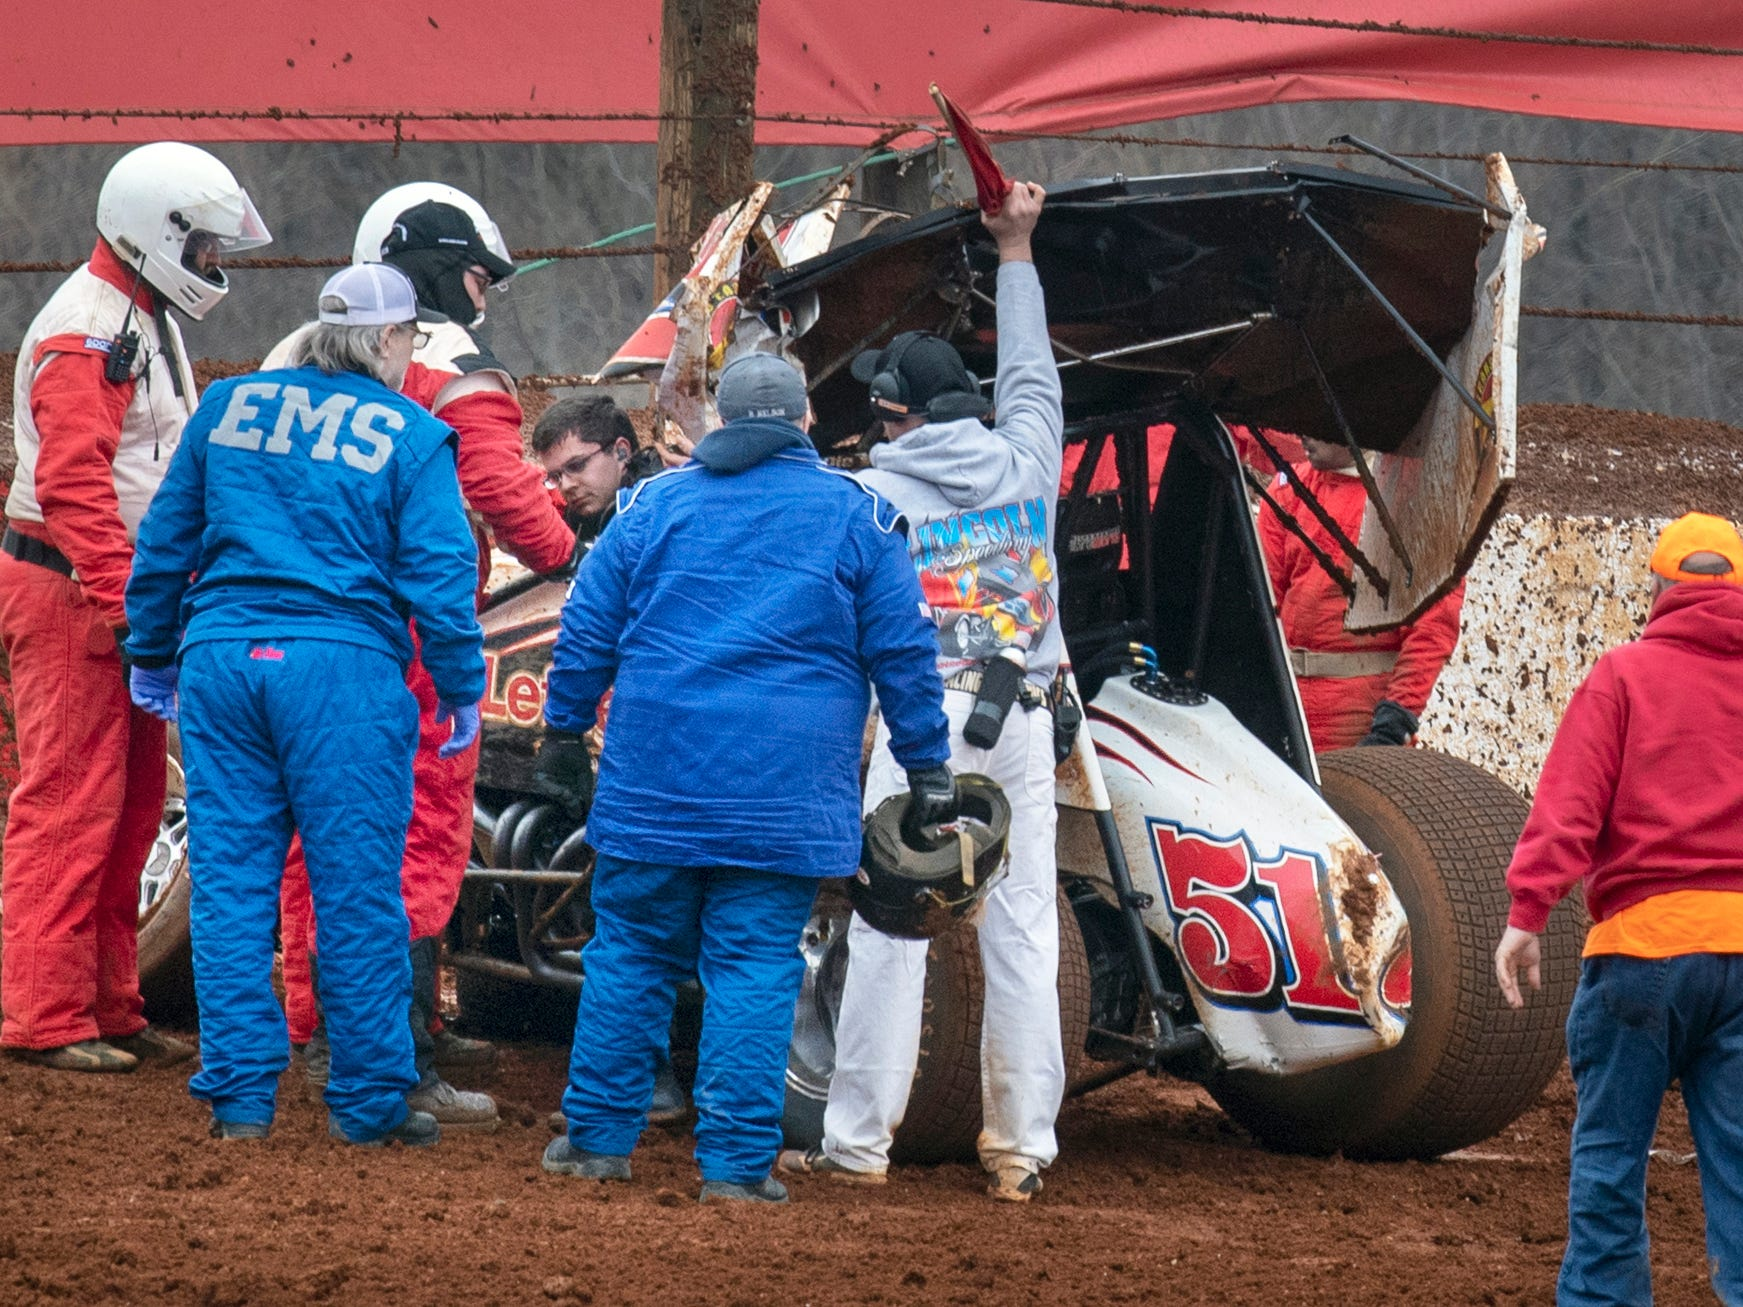 Freddie Rahmer emerges from the 51 car after a crash in the fourth turn of the 16th lap during the Lincoln Speedway Ice Breaker 30 on Sunday near Abbottstown.